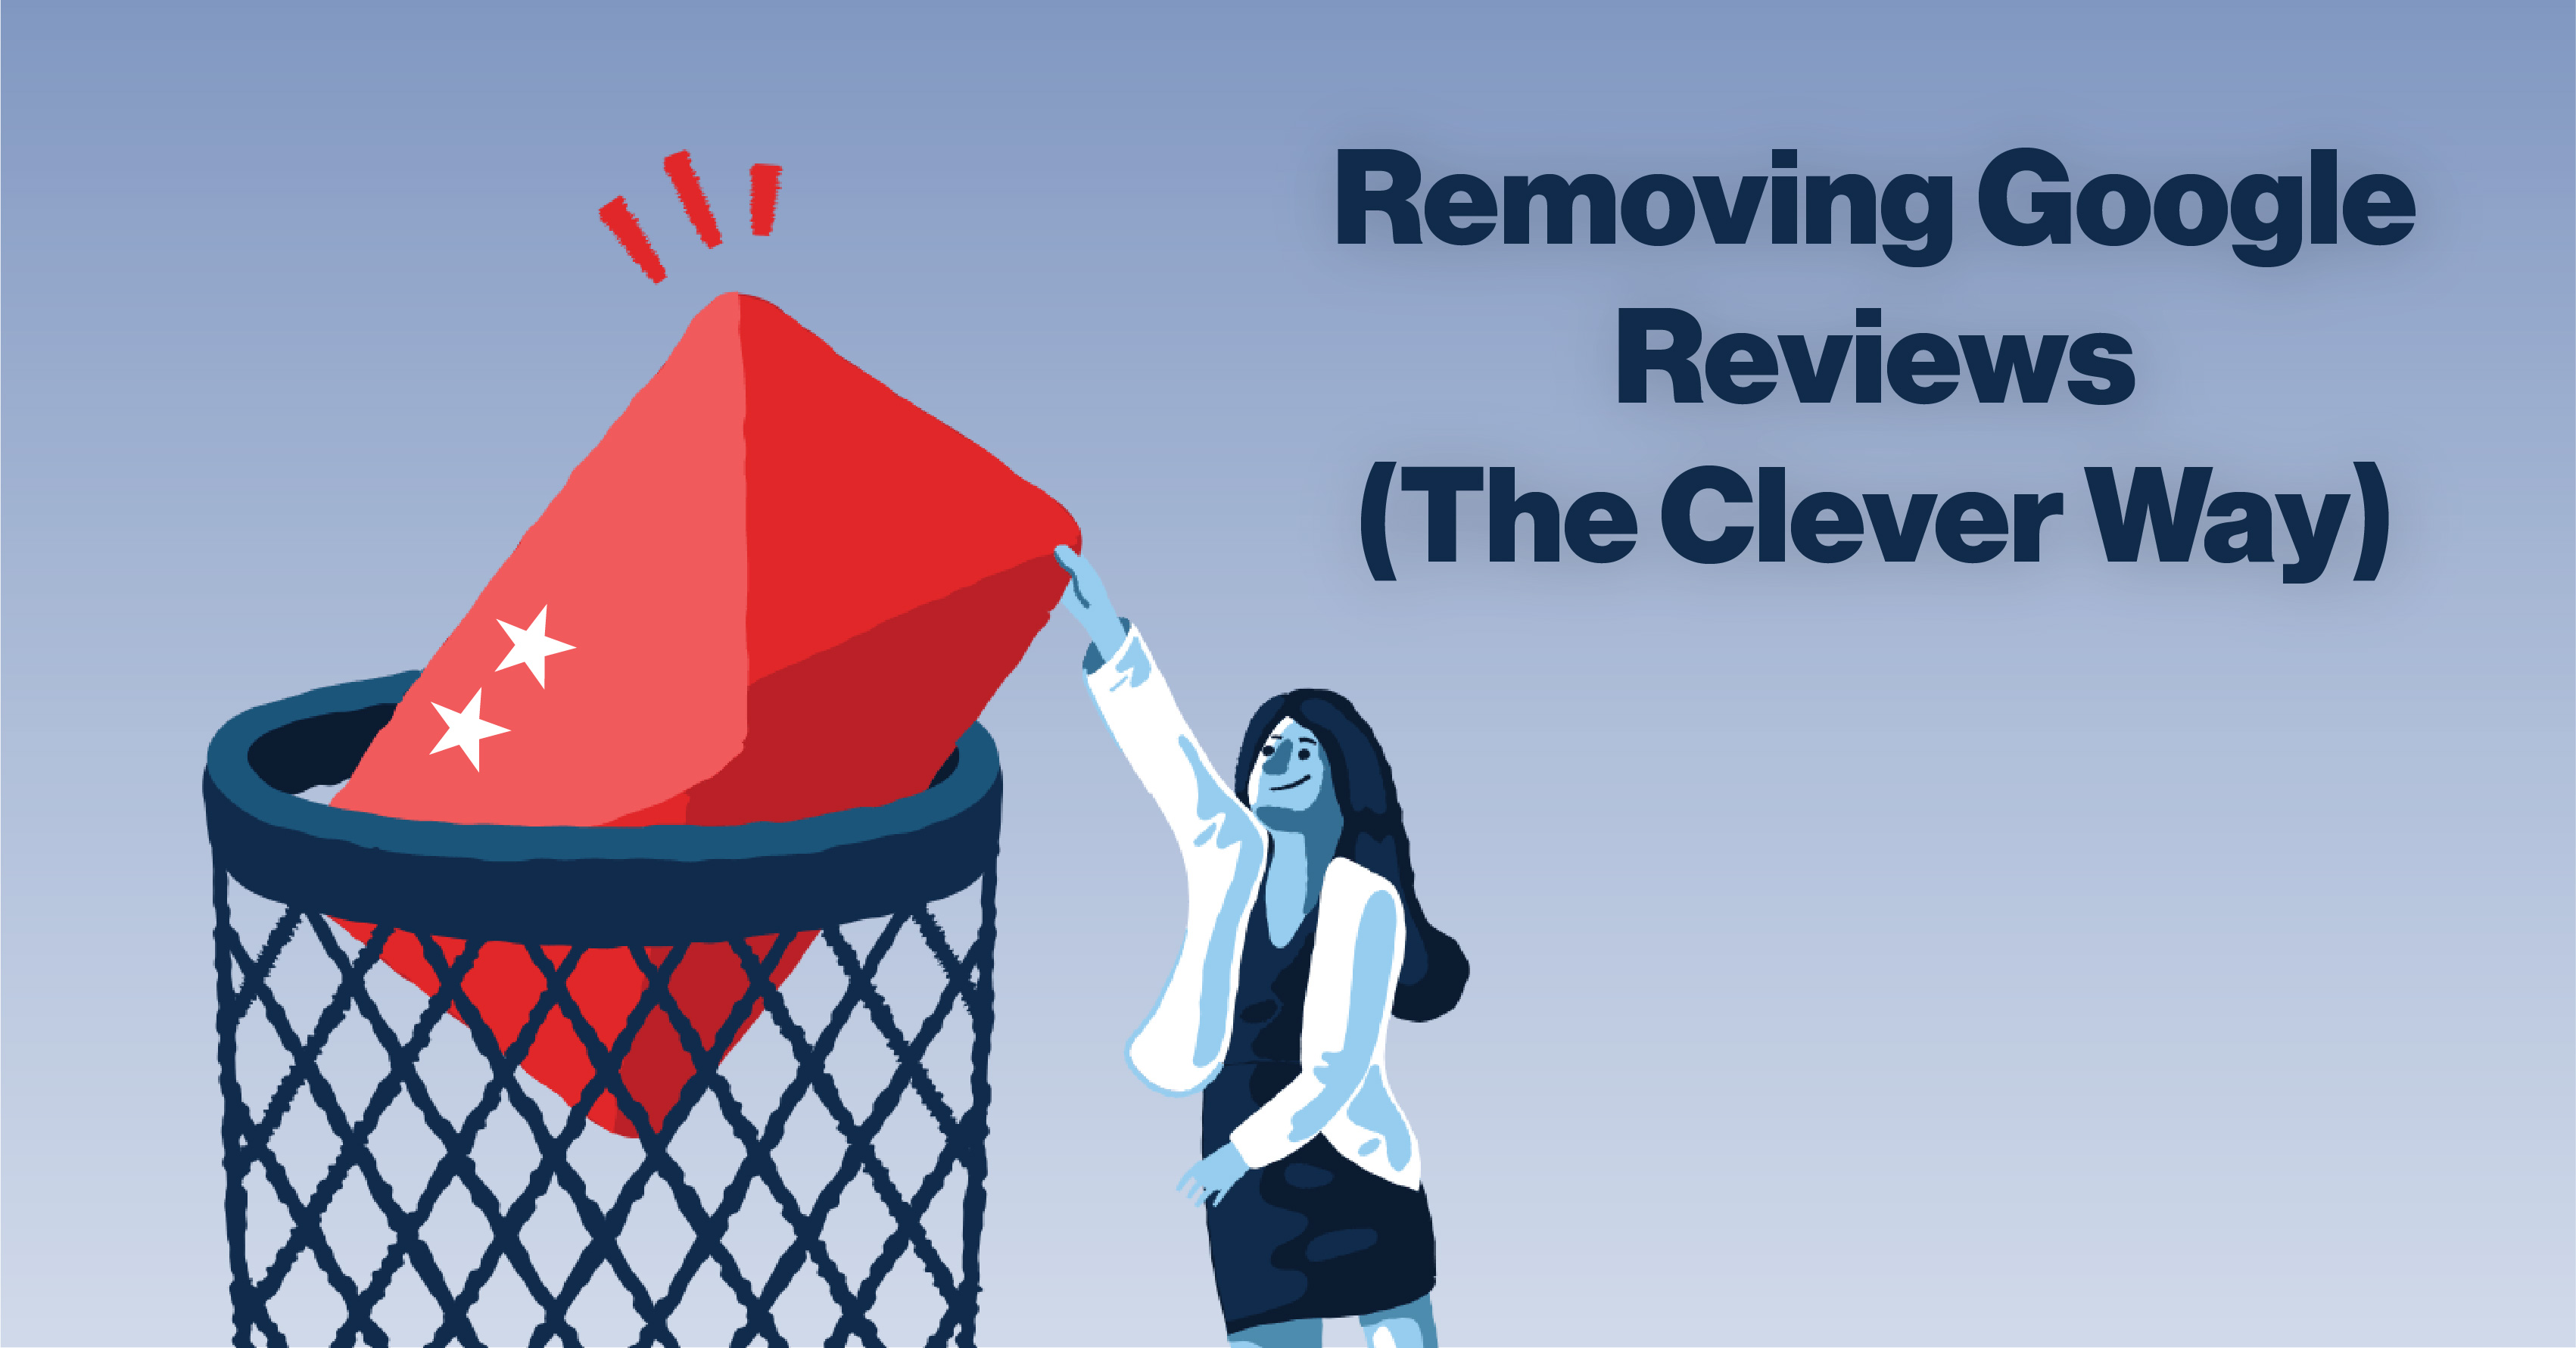 How To Remove Google Reviews For Your Business (The Clever Way)